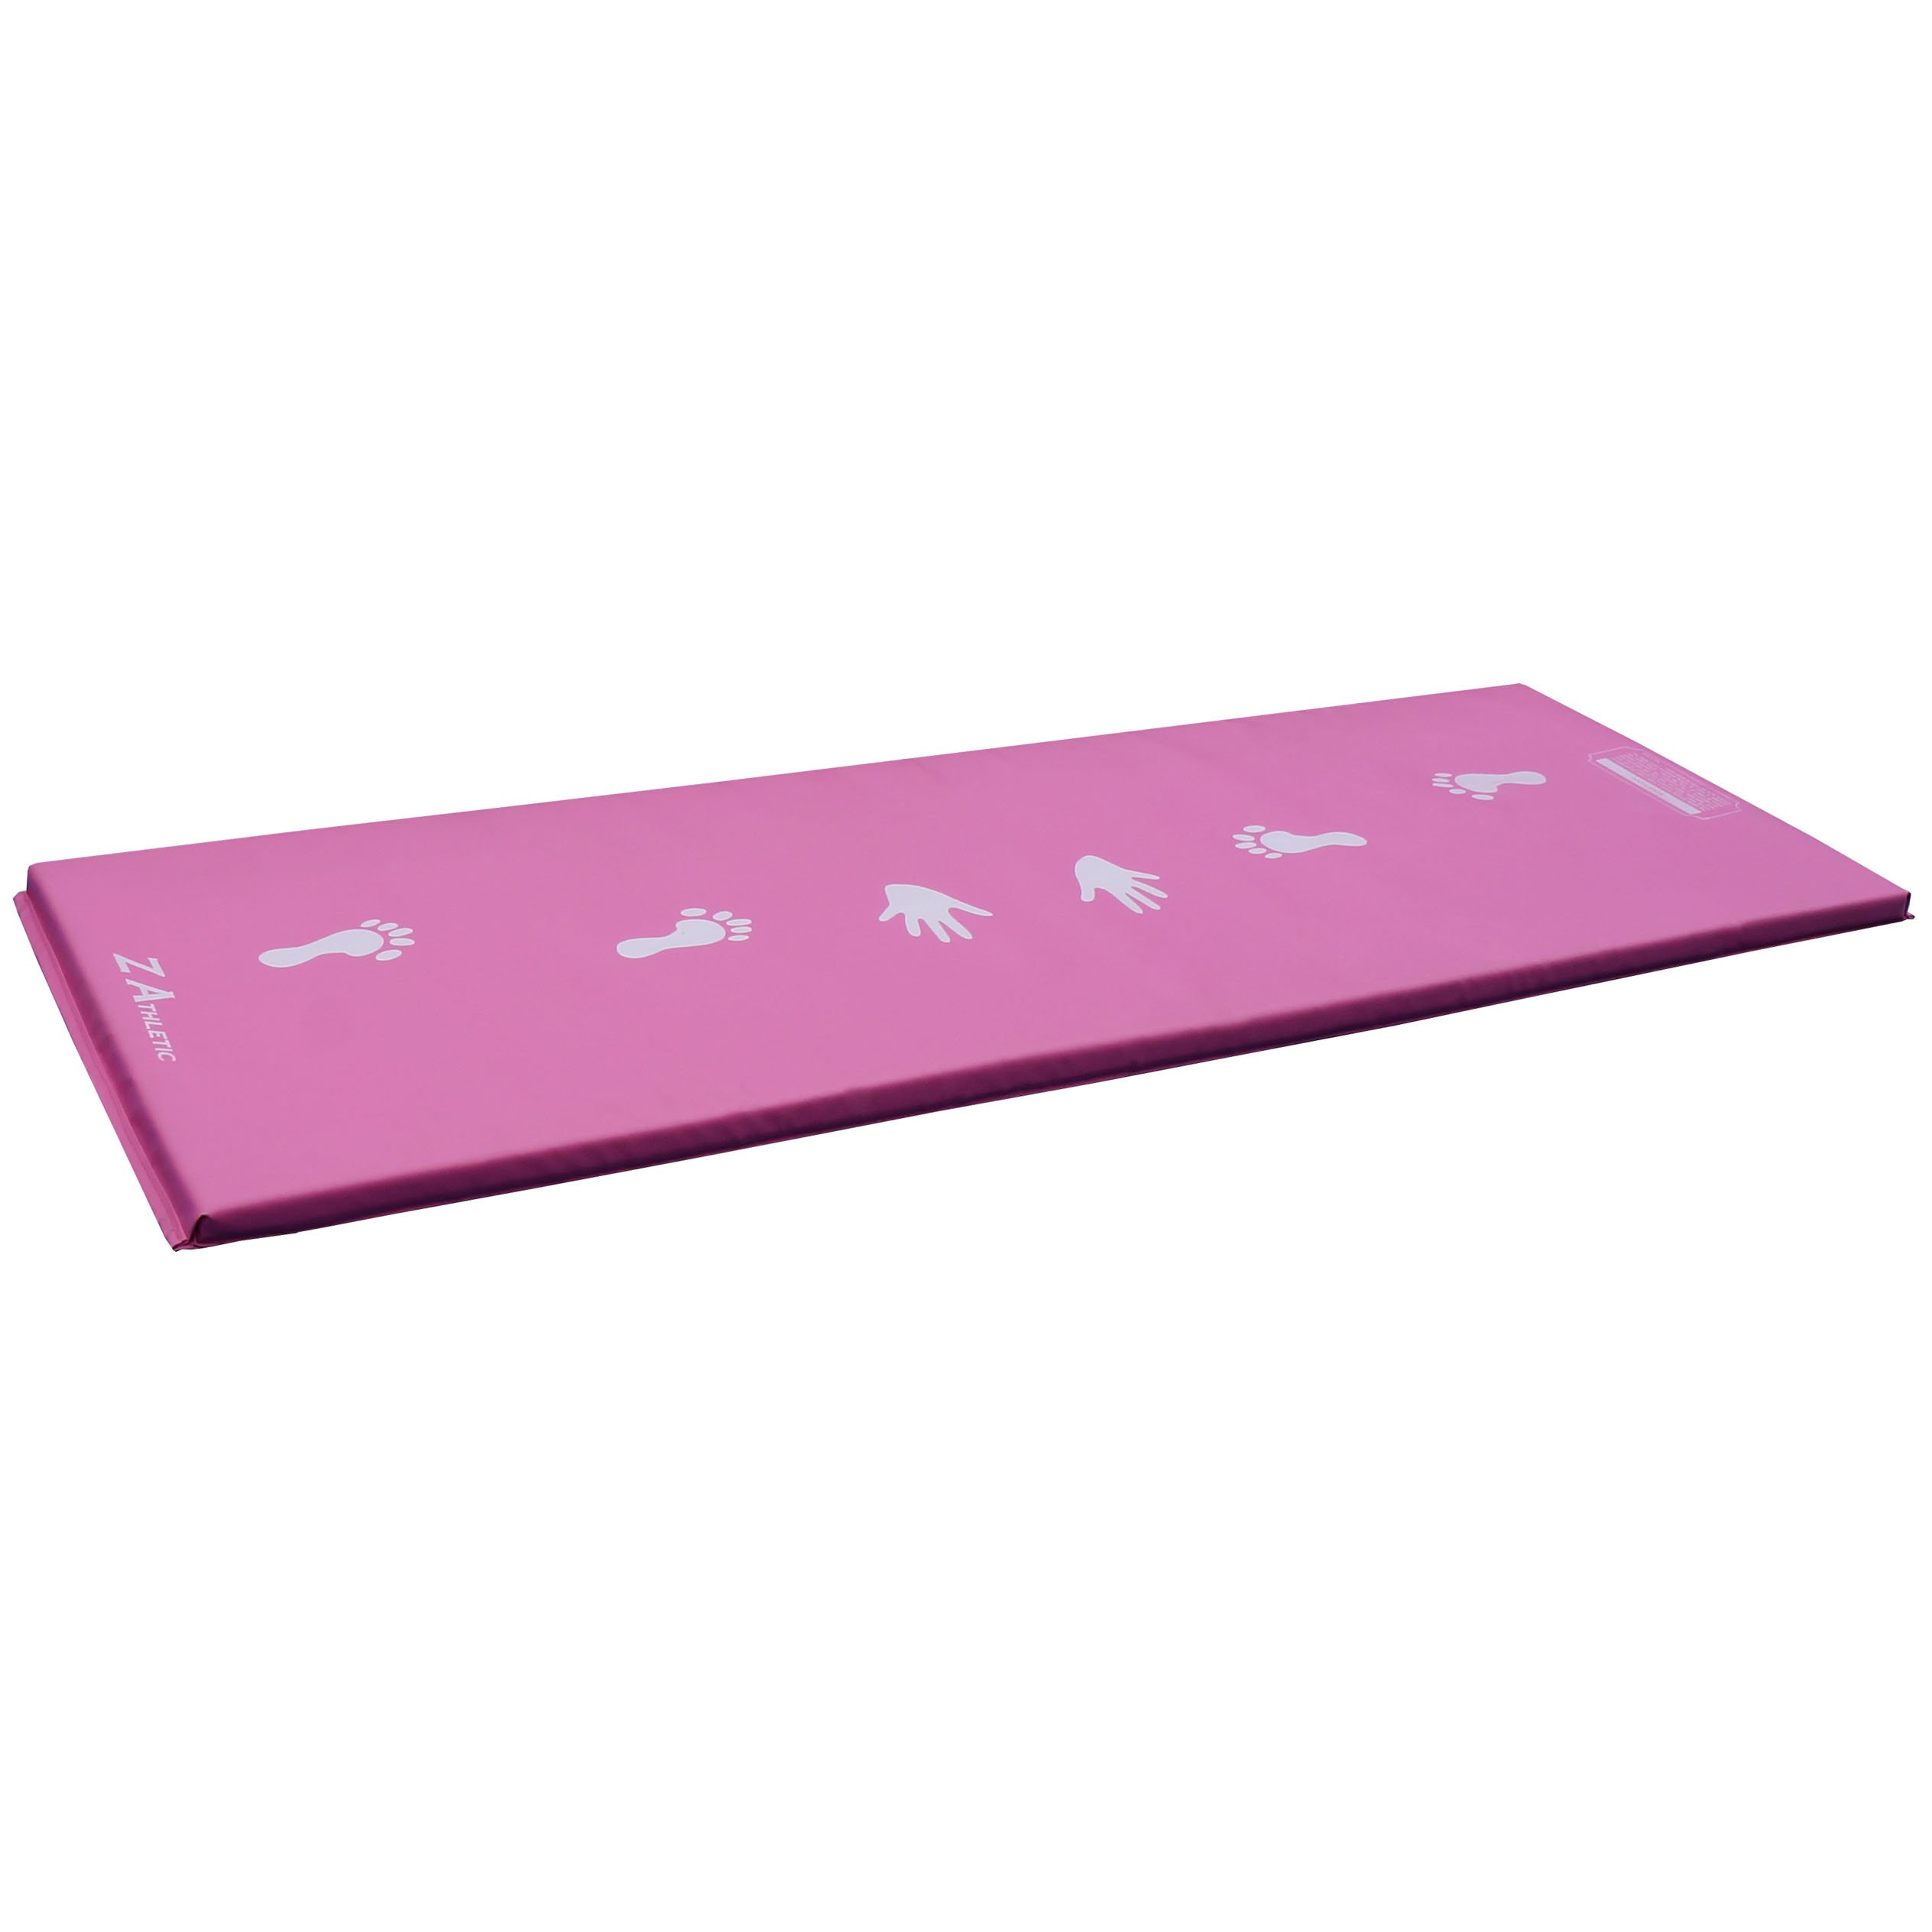 Z-Athletic Pink Children's Gymnastics Cartwheel/Beam Training Mat